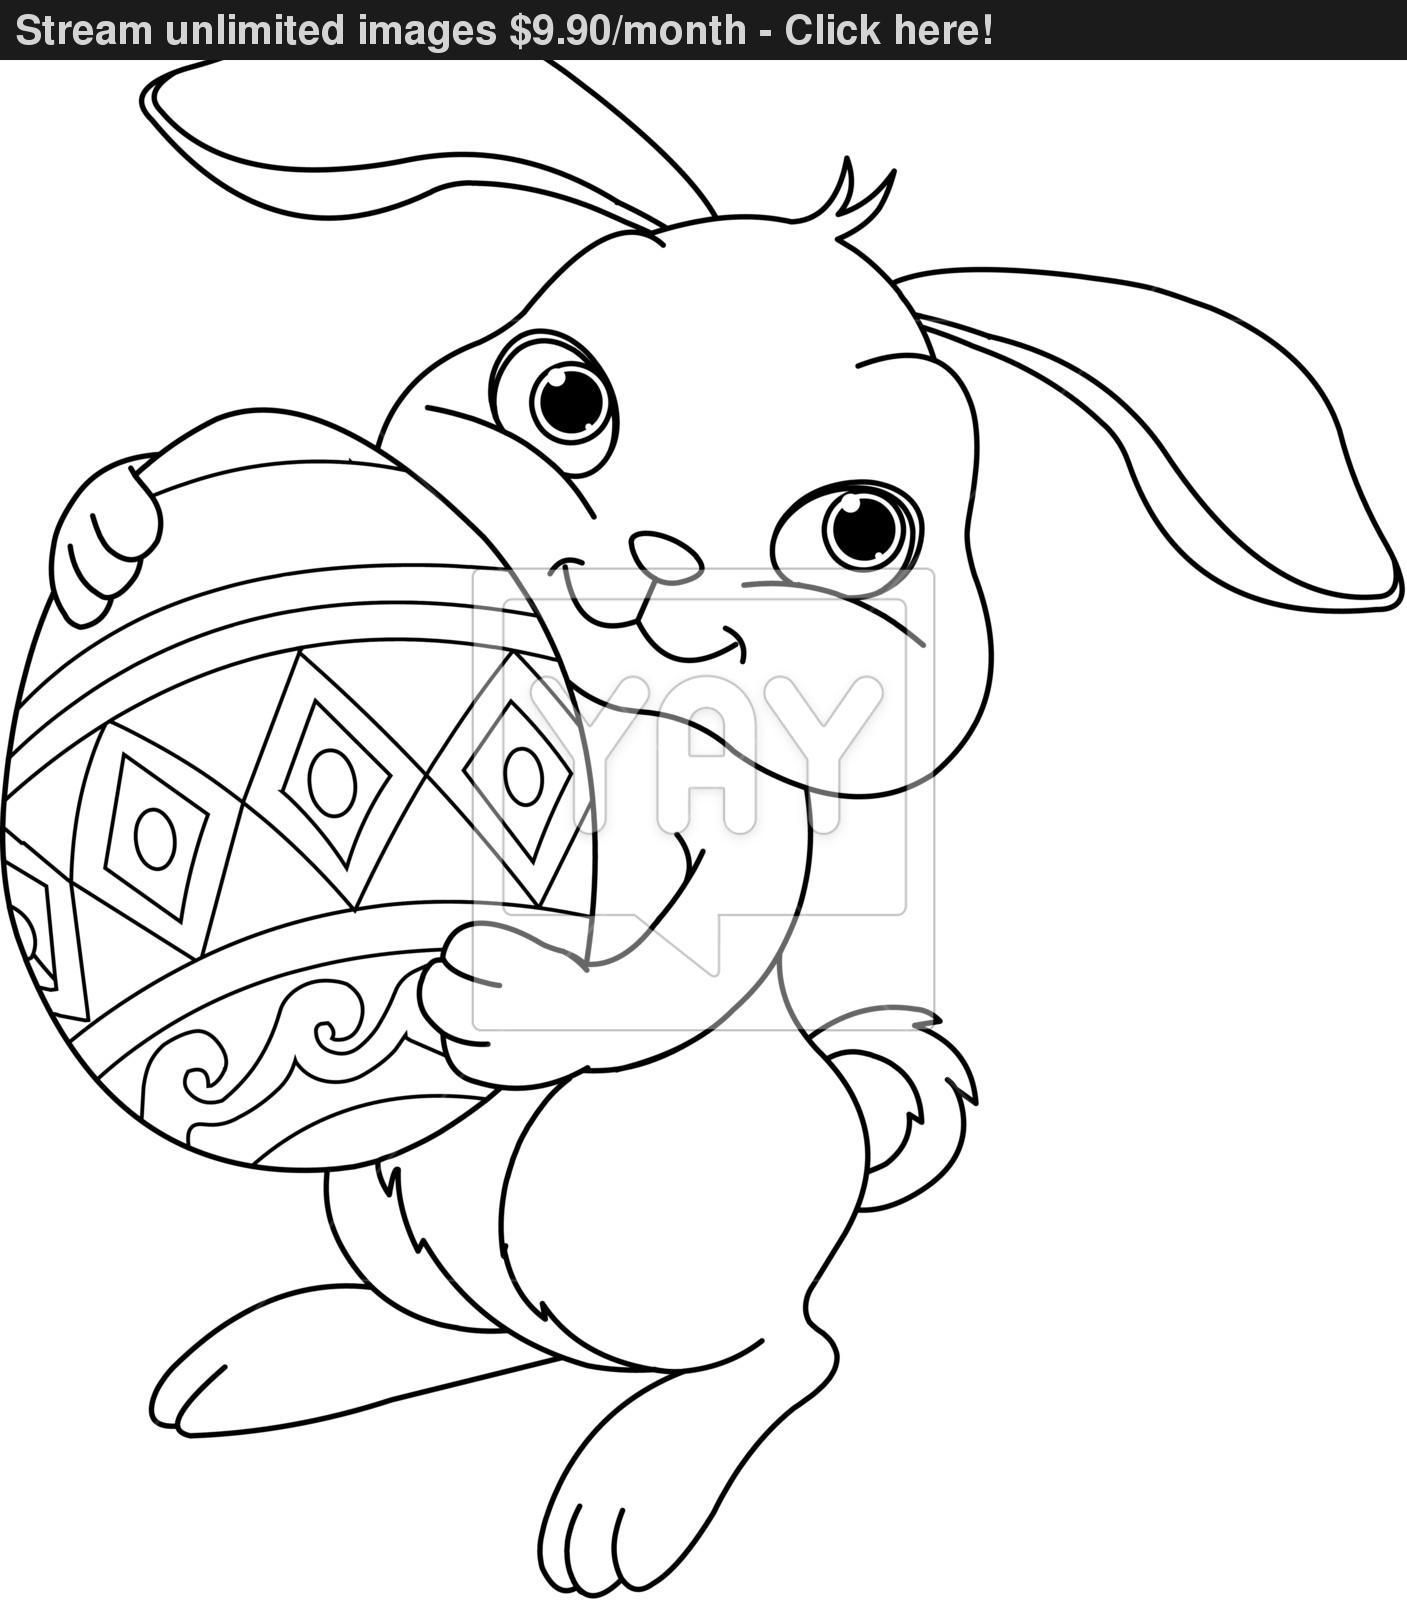 1407x1600 Simple Easter Bunny Coloring Pages Simple Colorings